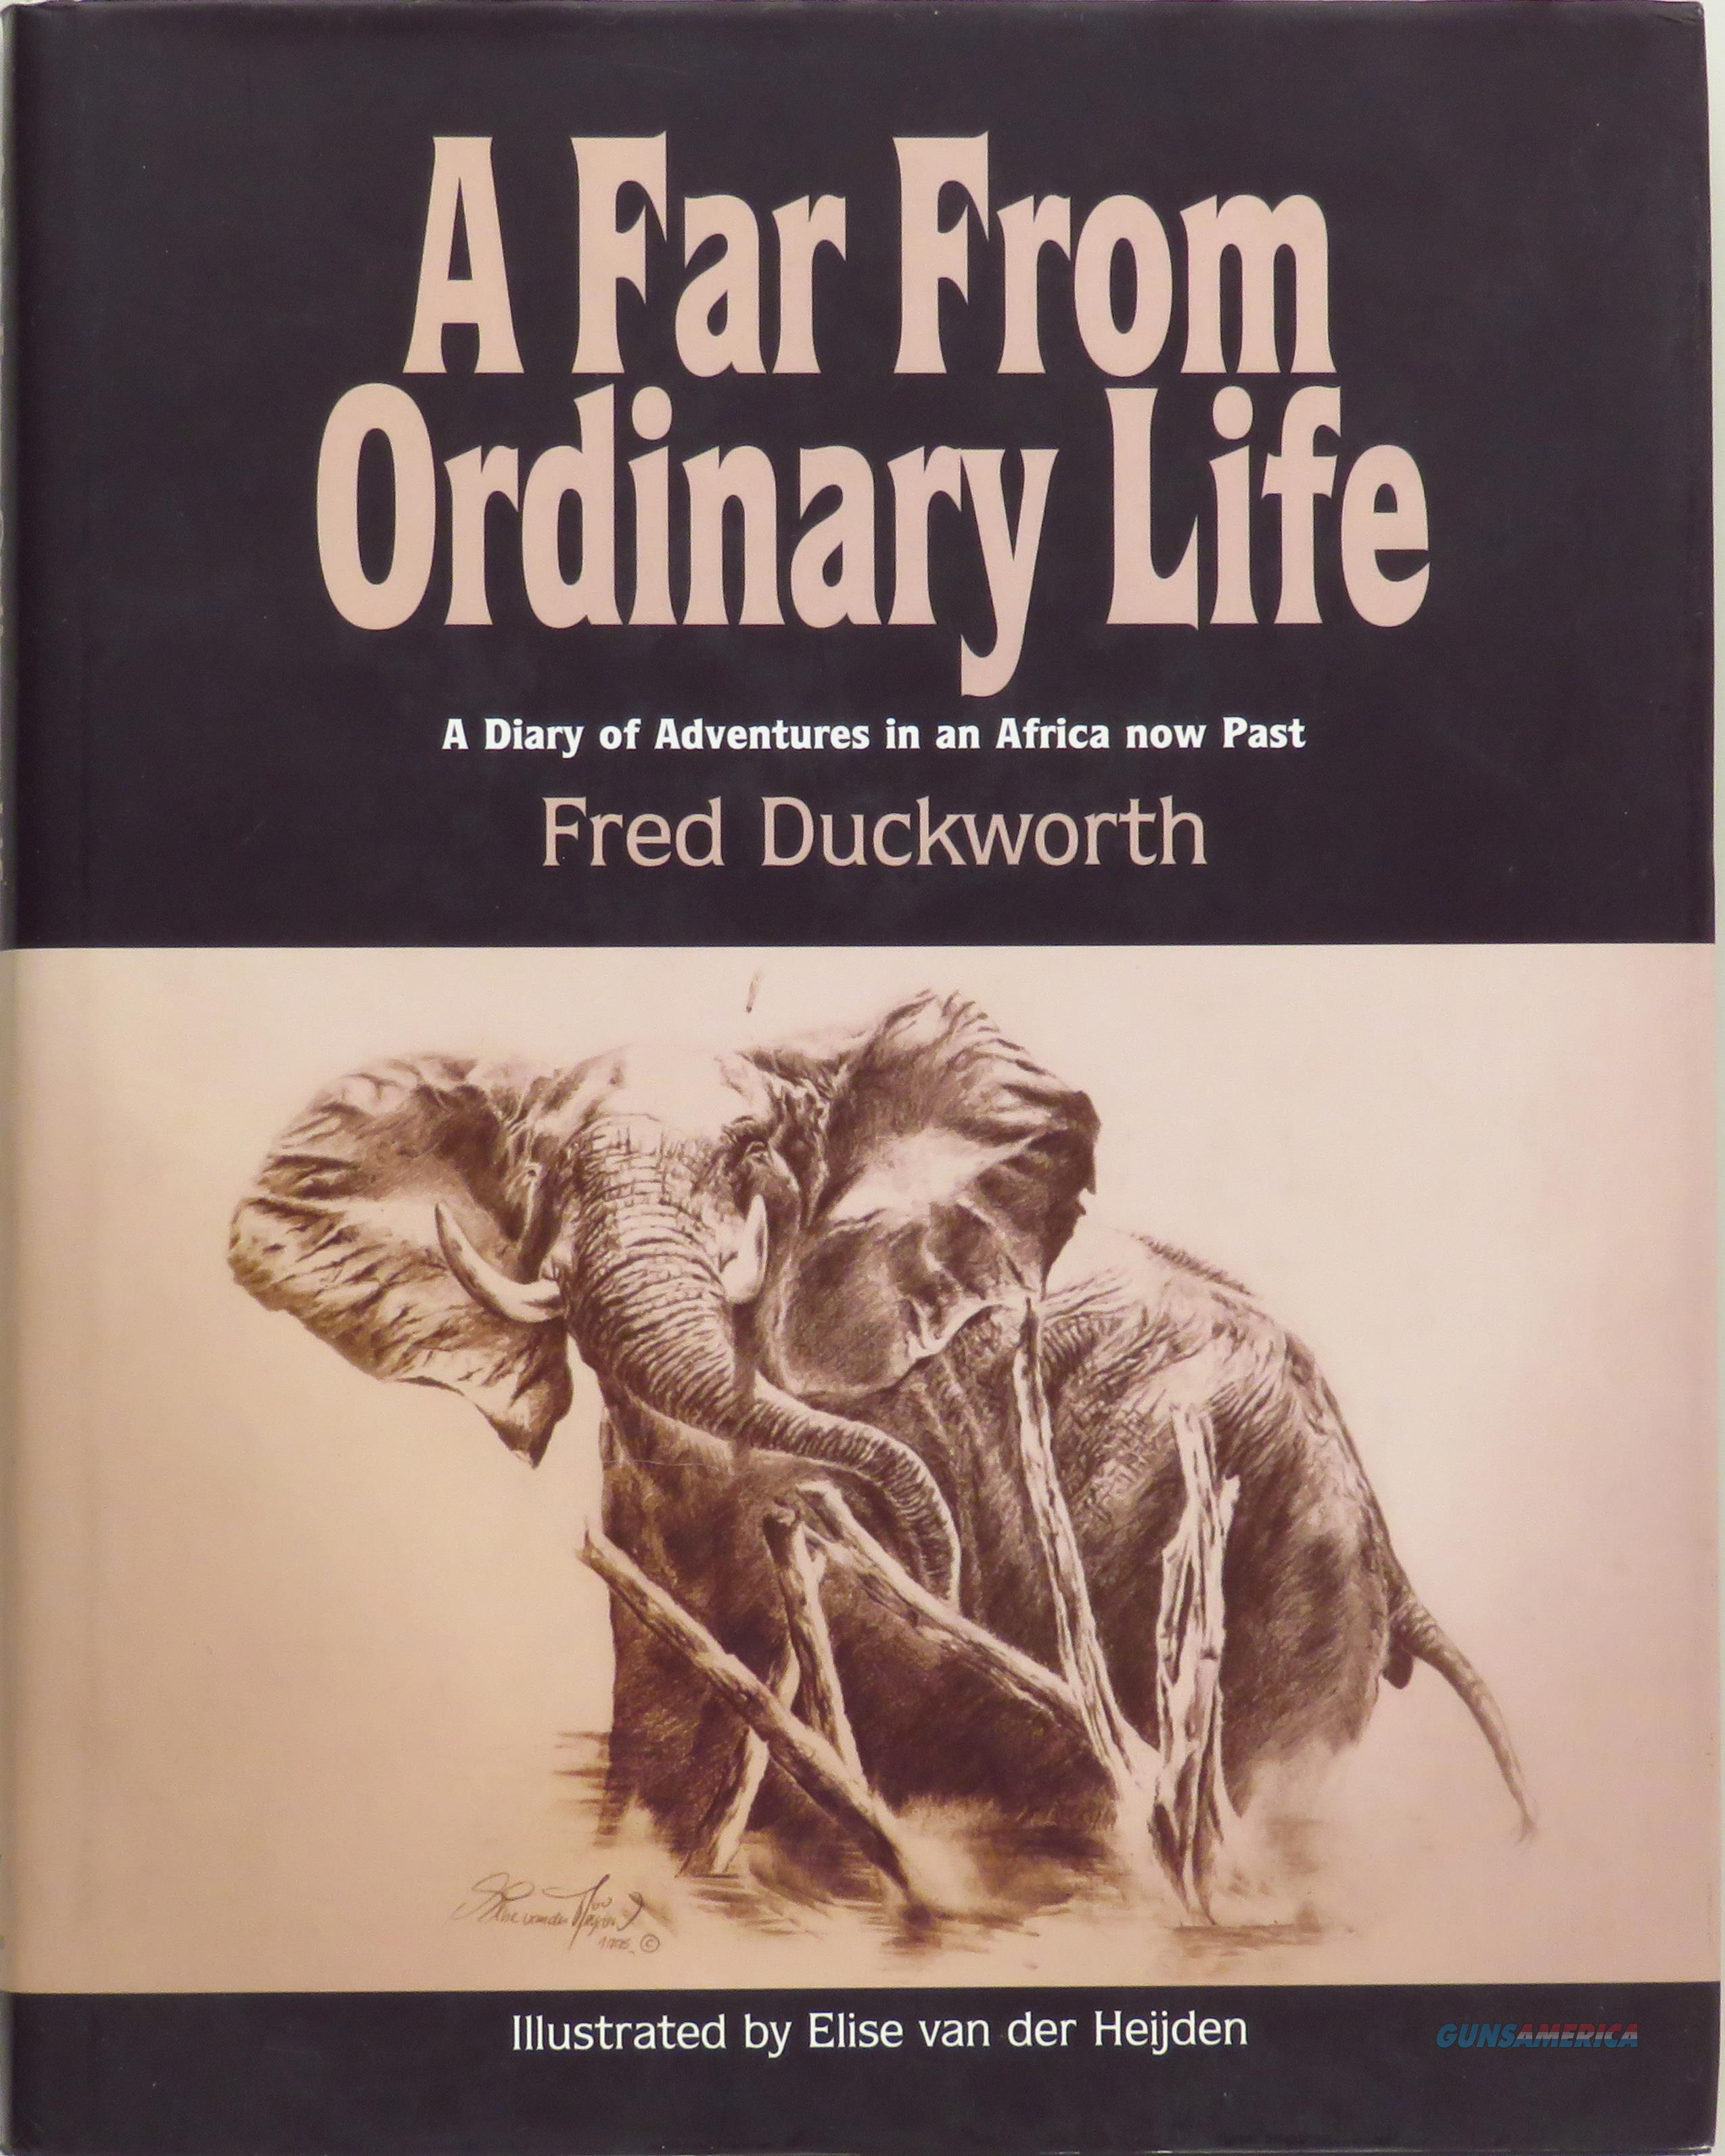 A Far From Ordinary Life, Fred Duckworth, Africa, first edition  Non-Guns > Books & Magazines